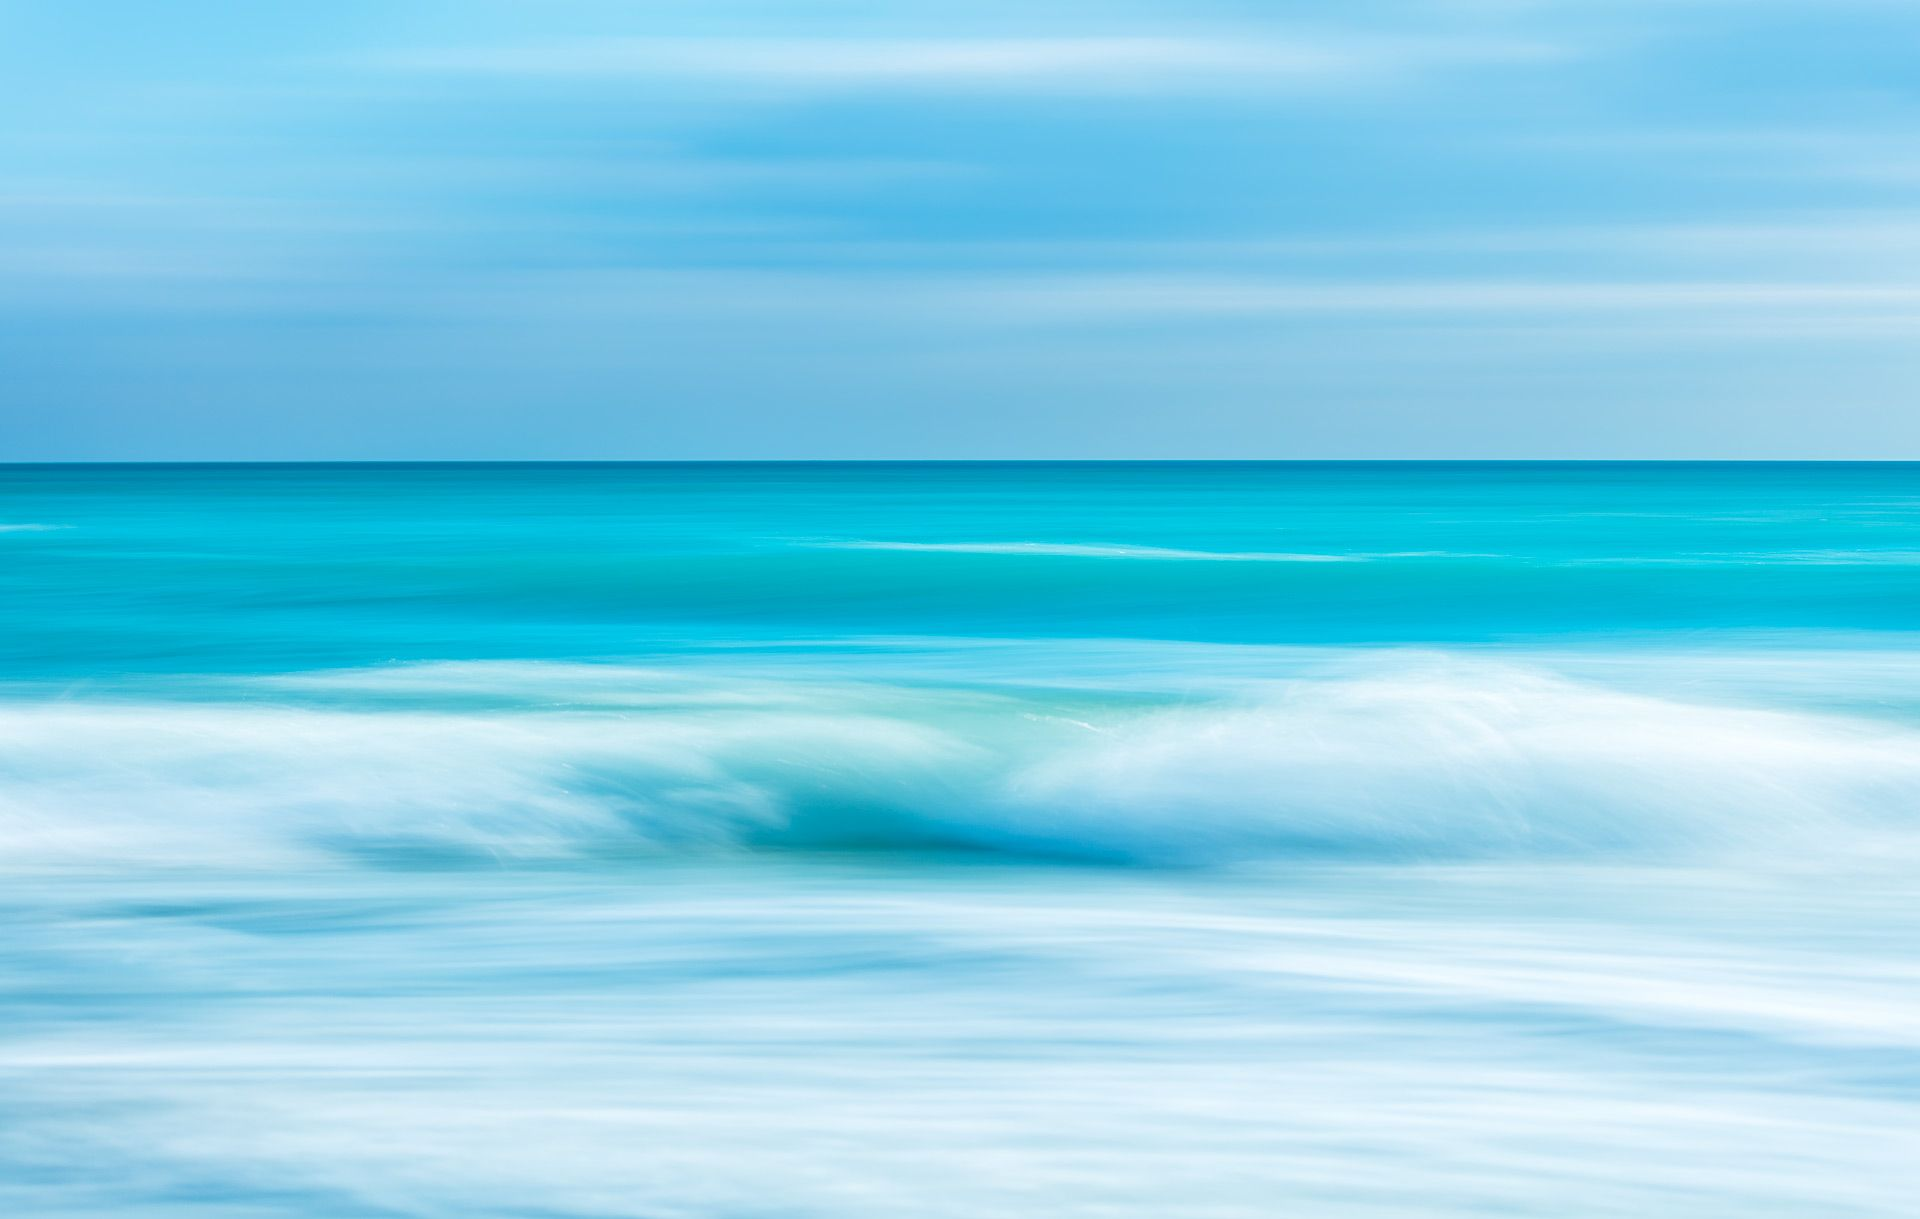 Check It Out Prints Available For Purchase A Perfect Gift For The Art And Ocean Lover In Your Life Landscape Photography Fine Art Landscape Ocean Art